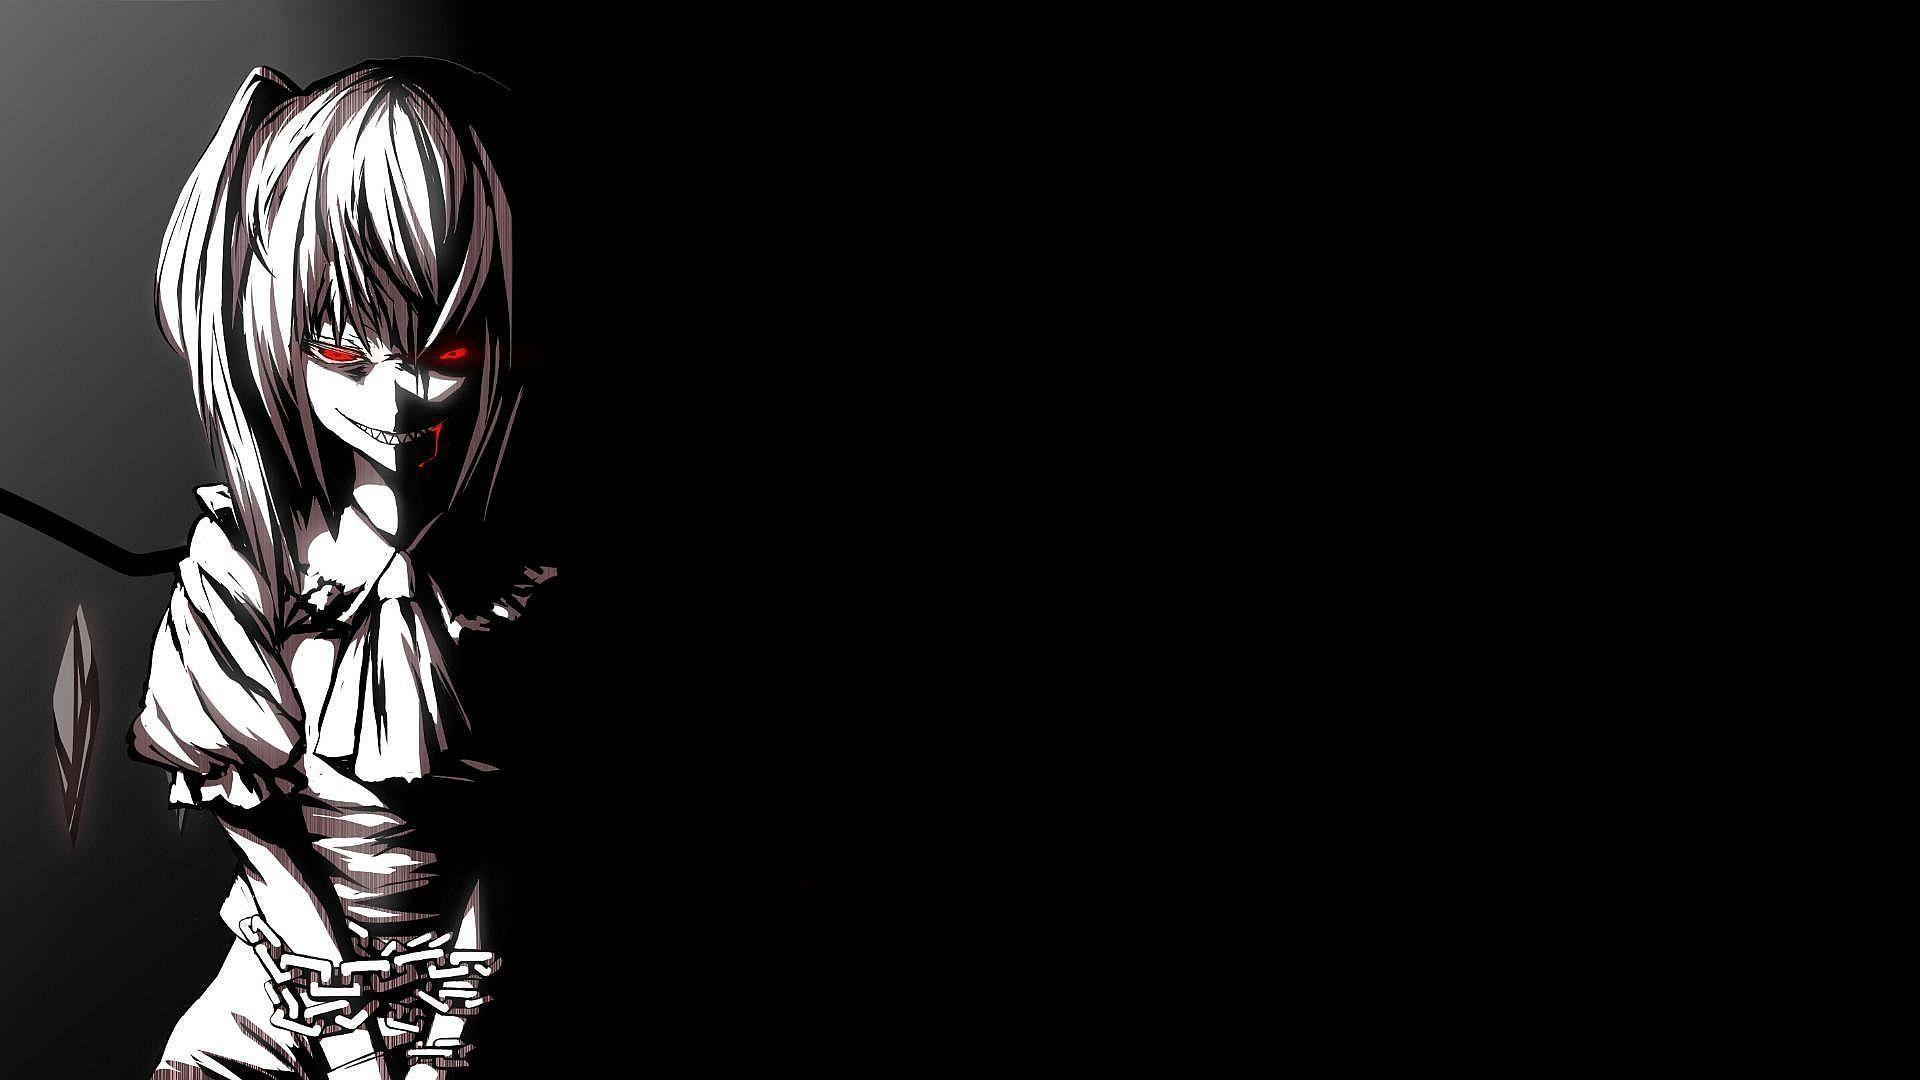 Dark Anime Wallpapers Top Free Dark Anime Backgrounds Wallpaperaccess